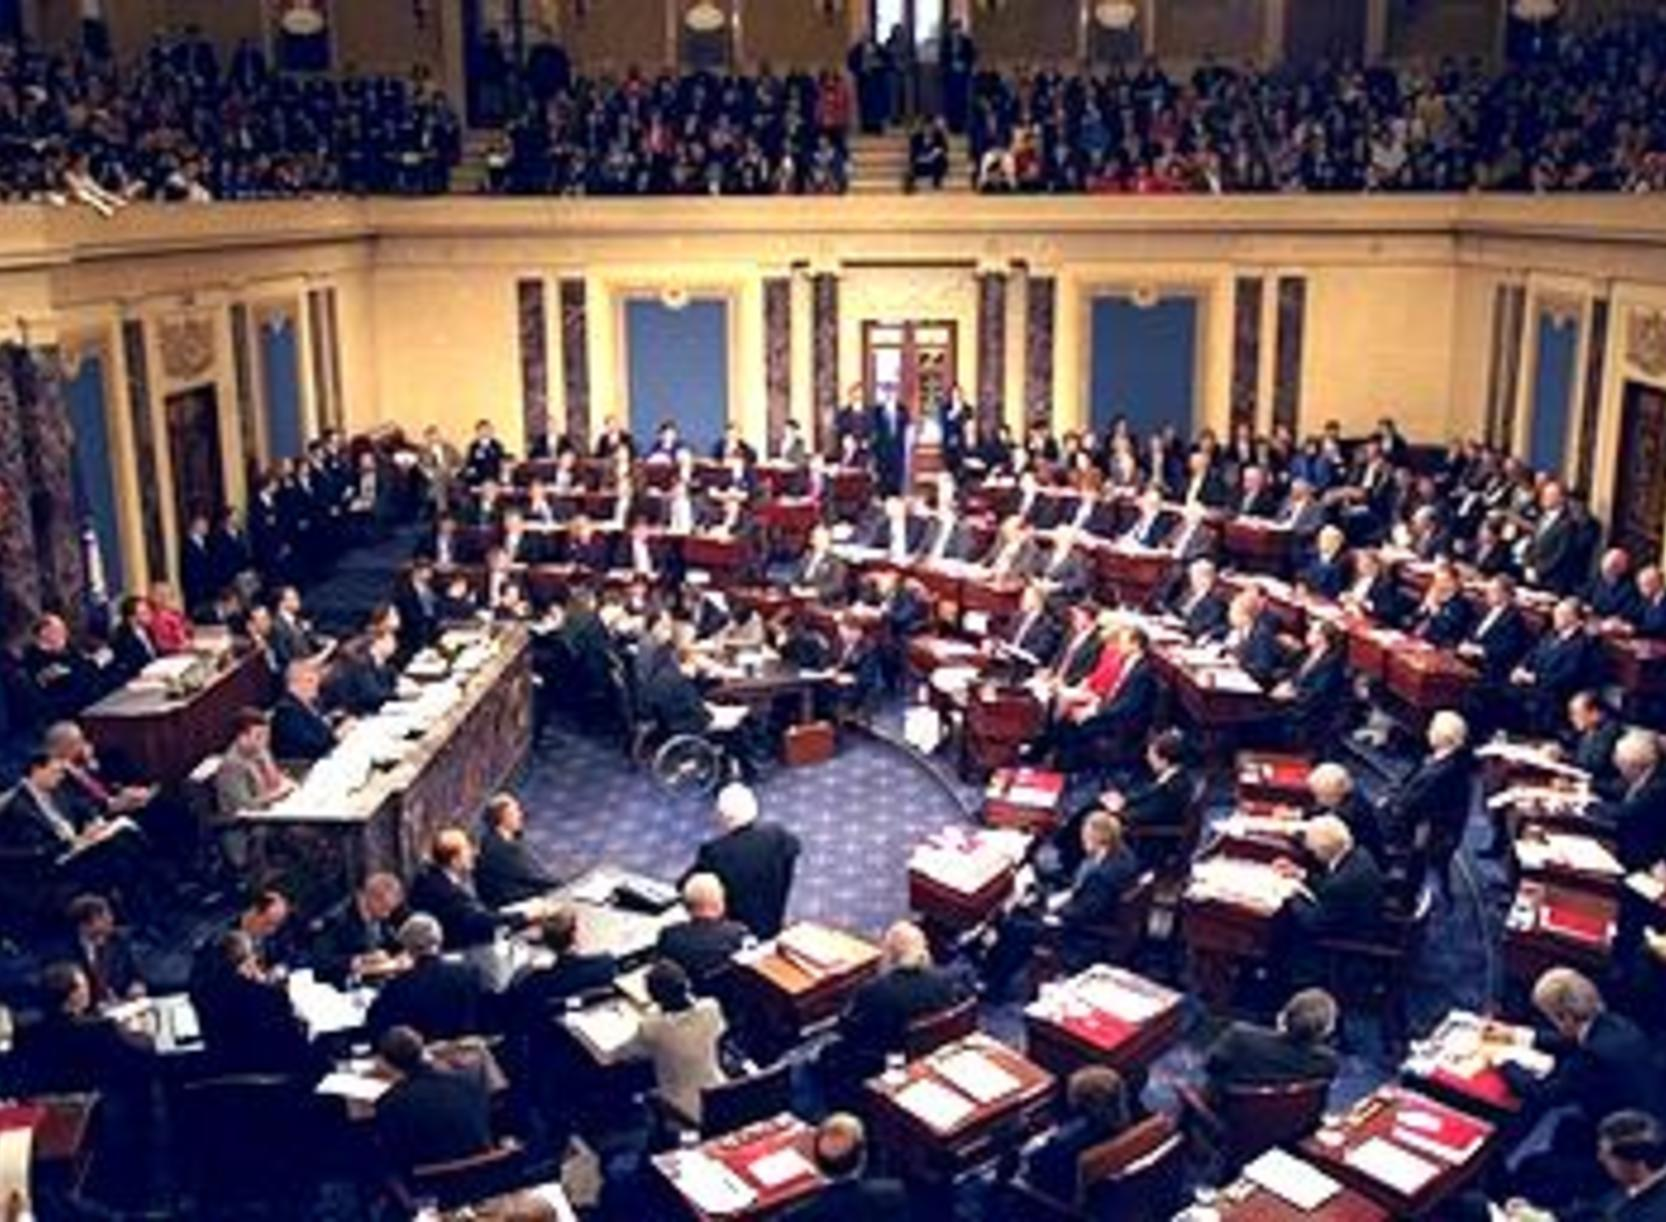 Proceedings in session during the impeachment trial of President Bill Clinton.